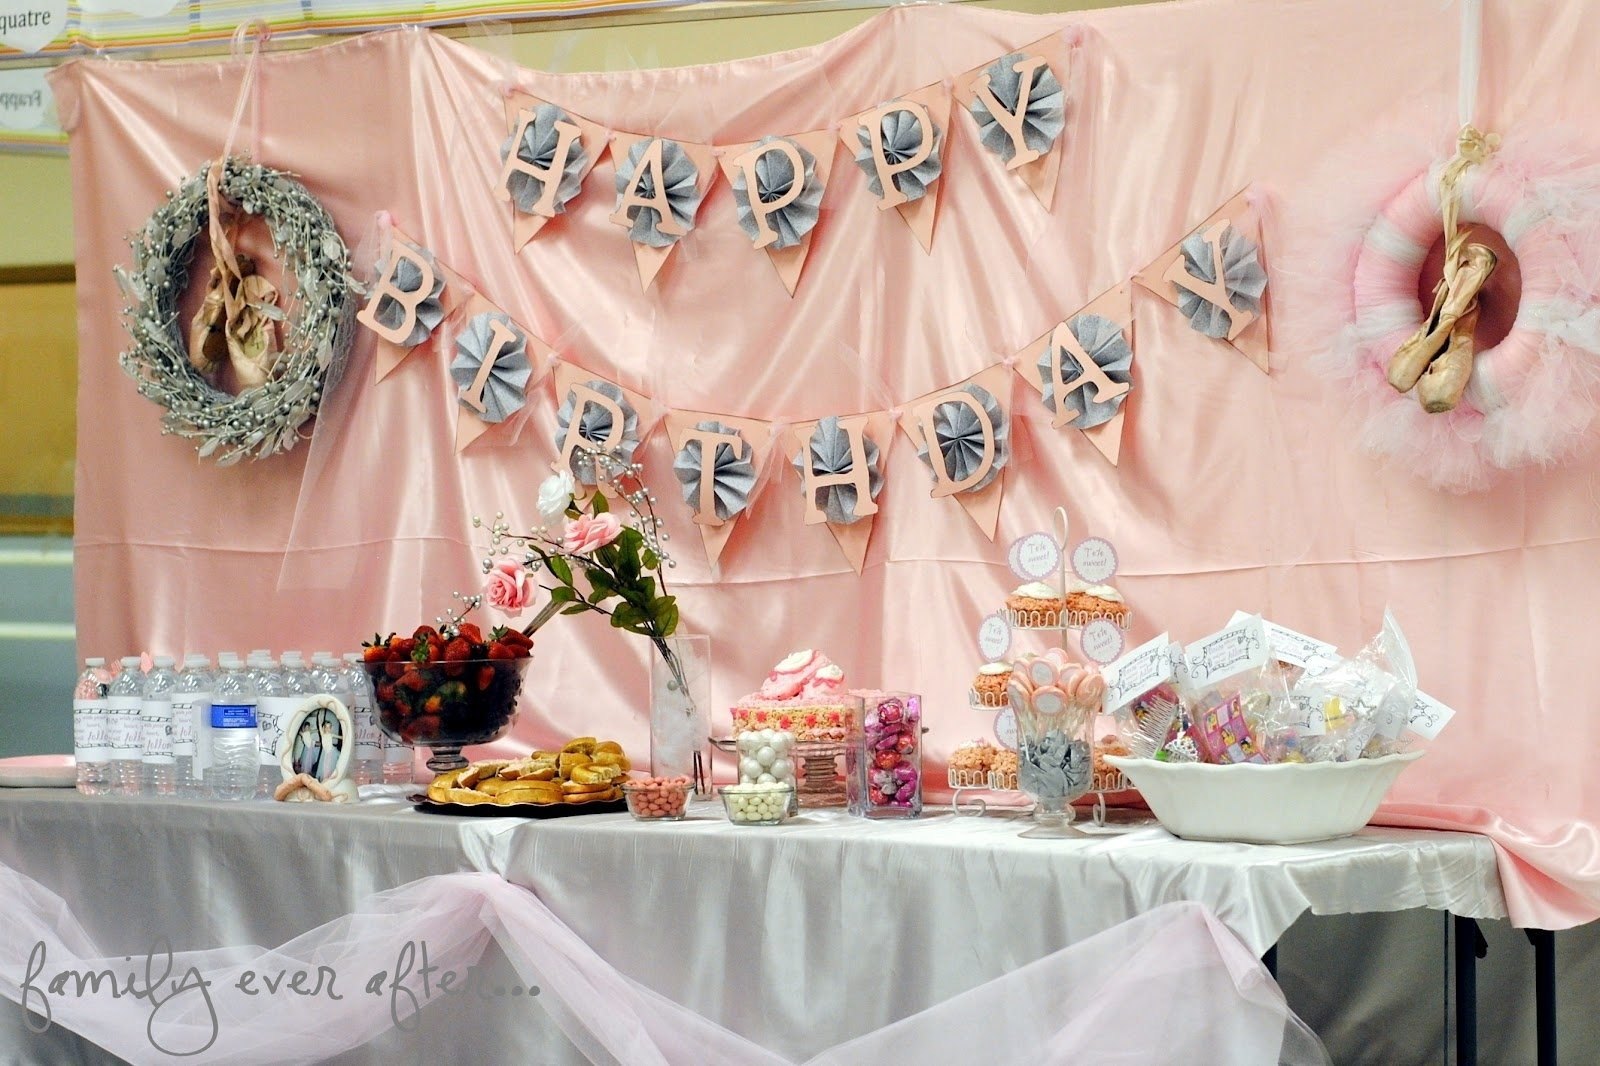 10 Stunning Ideas For Girls Birthday Party 50 birthday party themes for girls i heart nap time 51 2020